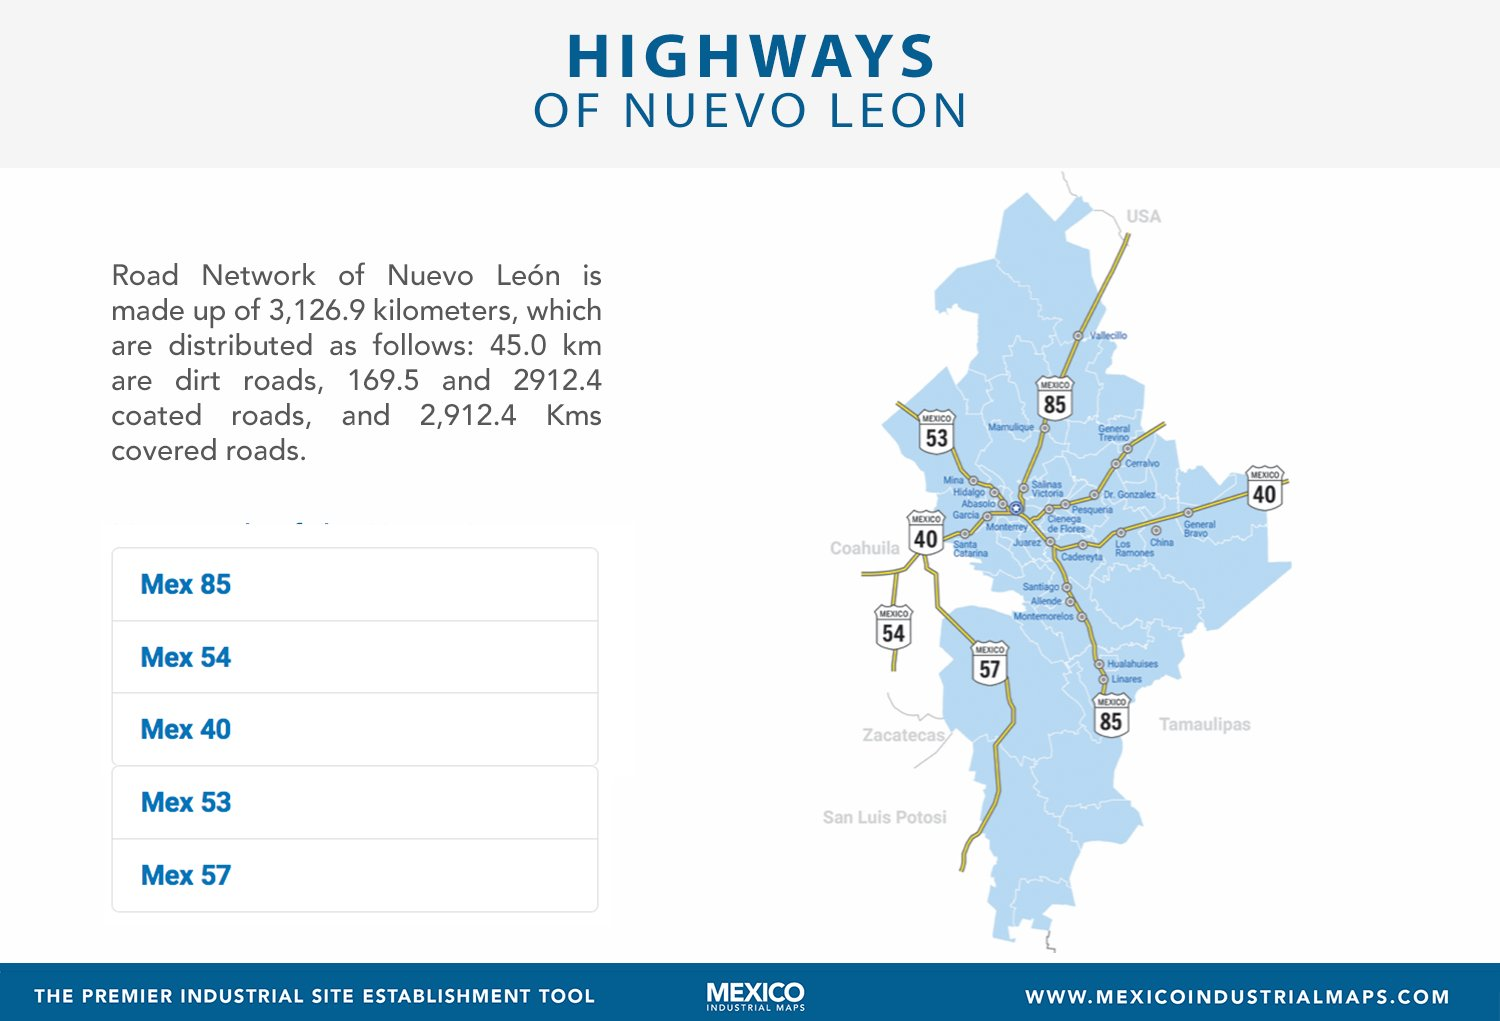 Salinas Mexico Map.Mexico Industrial Maps On Twitter Main Roads Of The State Of Nuevo